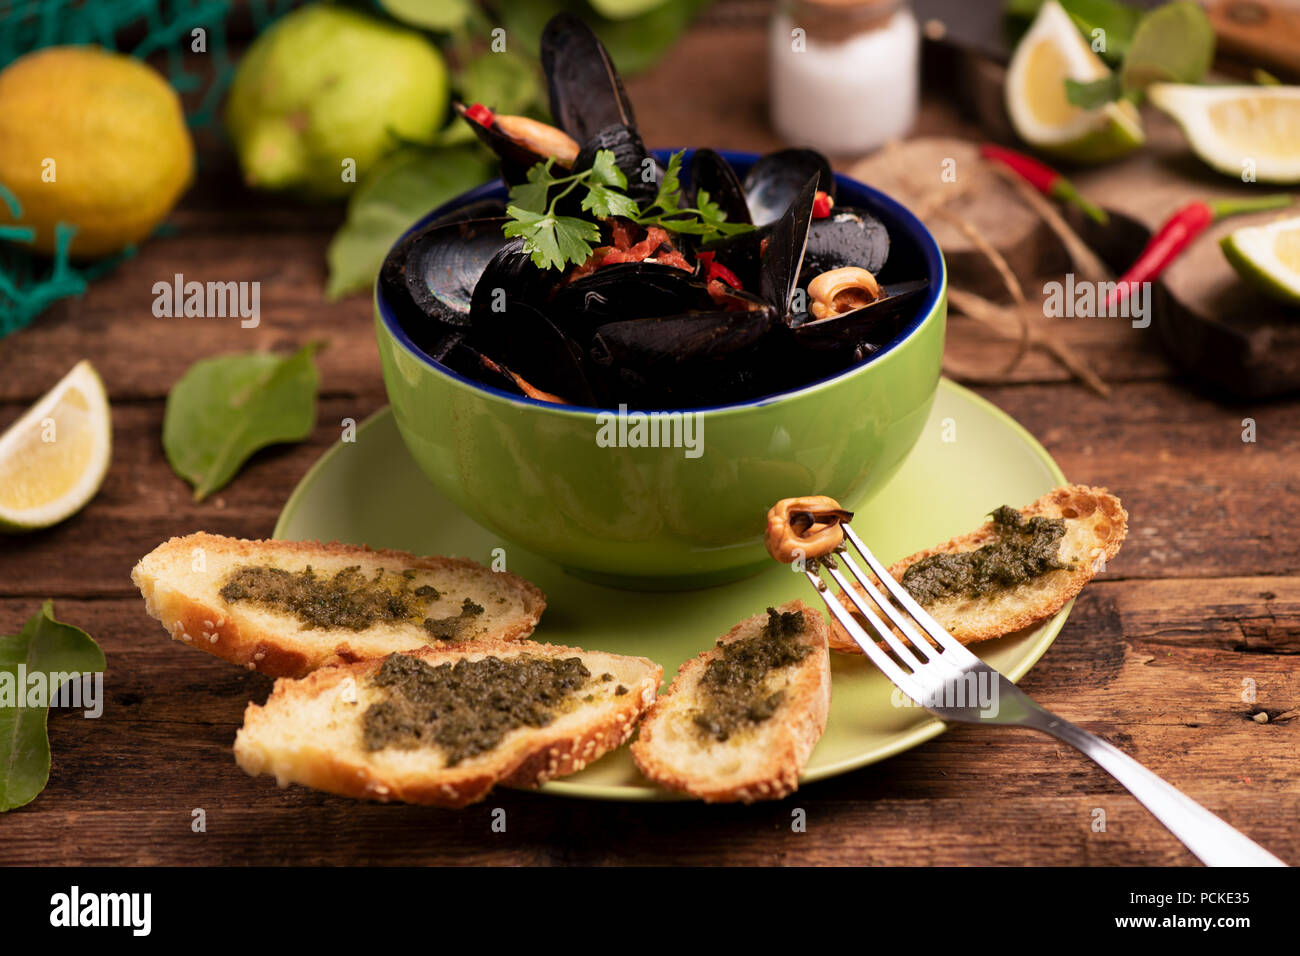 Boiled mussels in cooking dish on wooden background Stock Photo